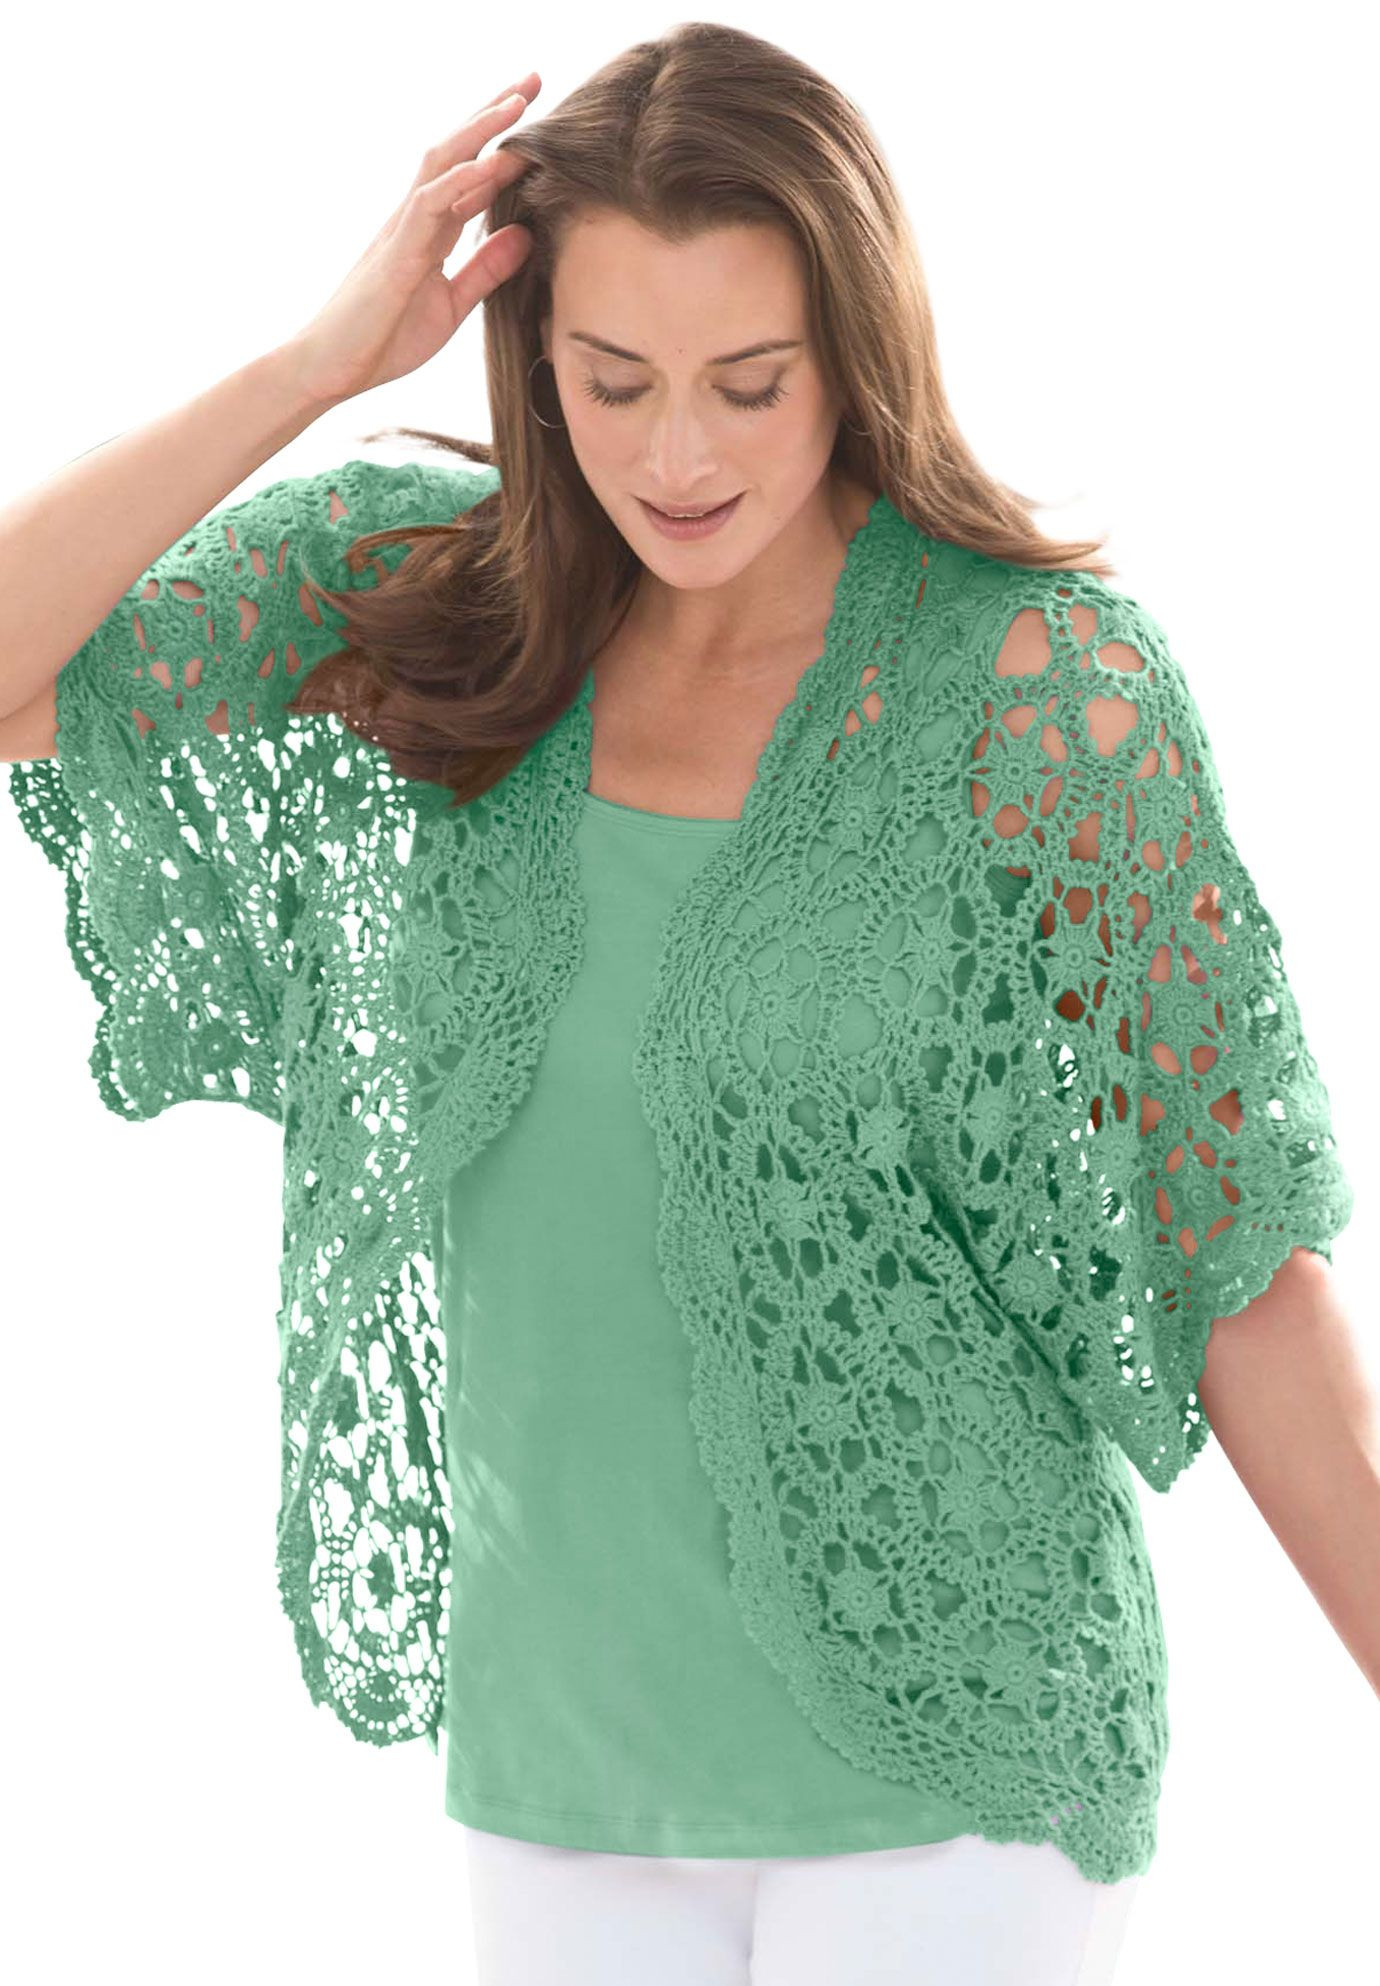 Plus Size Crochet New Shrug Cardigan In Crochet Plus Size Shrugs Of Gorgeous 50 Pictures Plus Size Crochet